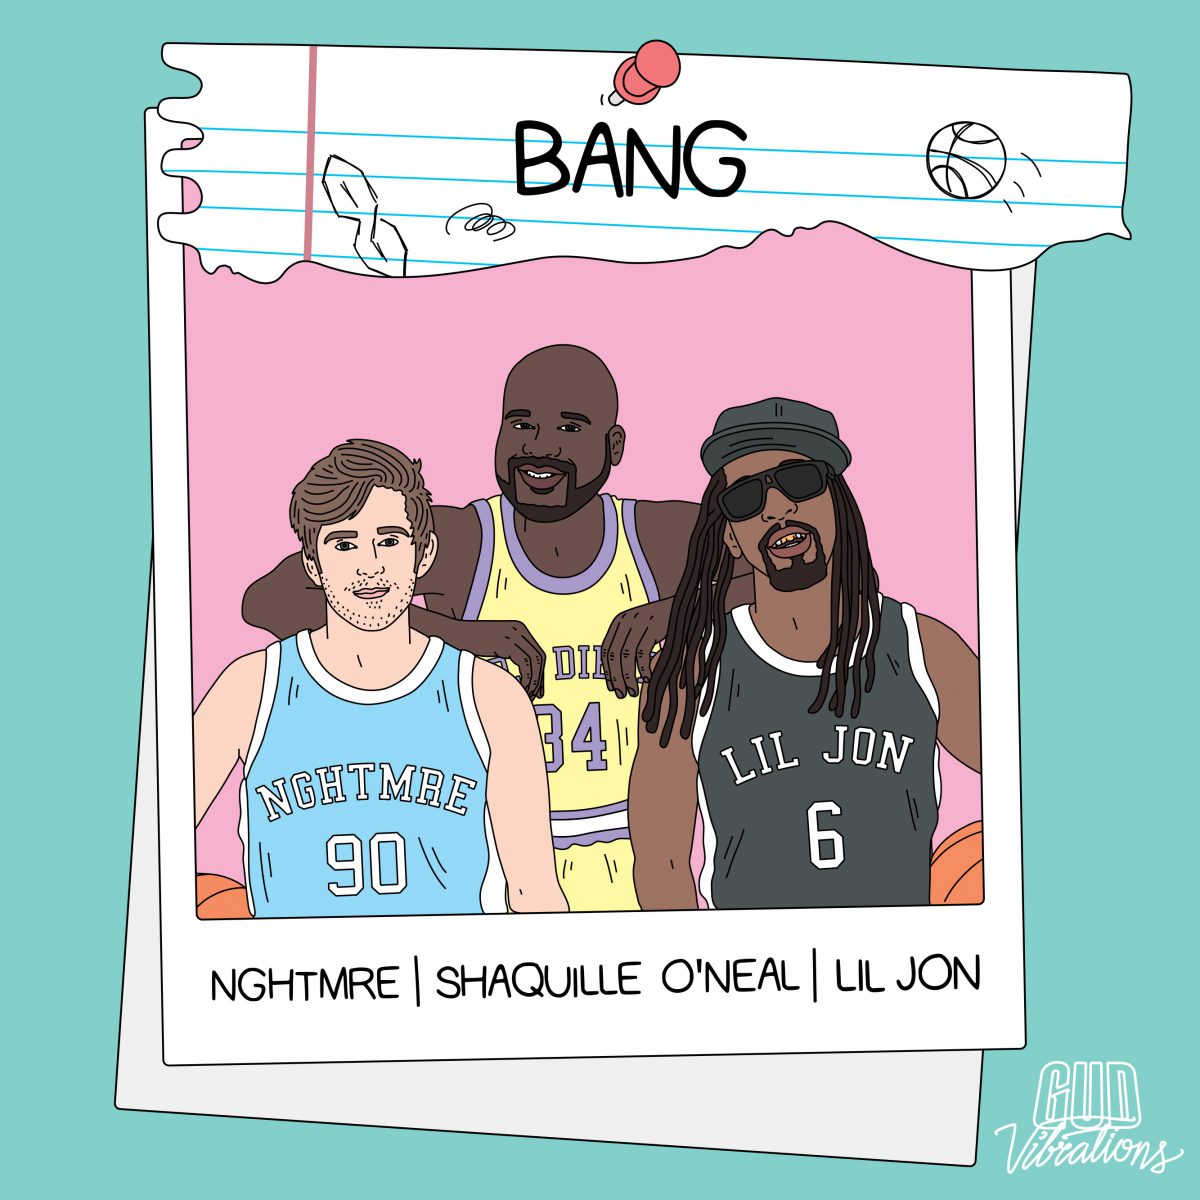 NGHTMRE, Shaquille O' Neal, Lil Jon - BANG